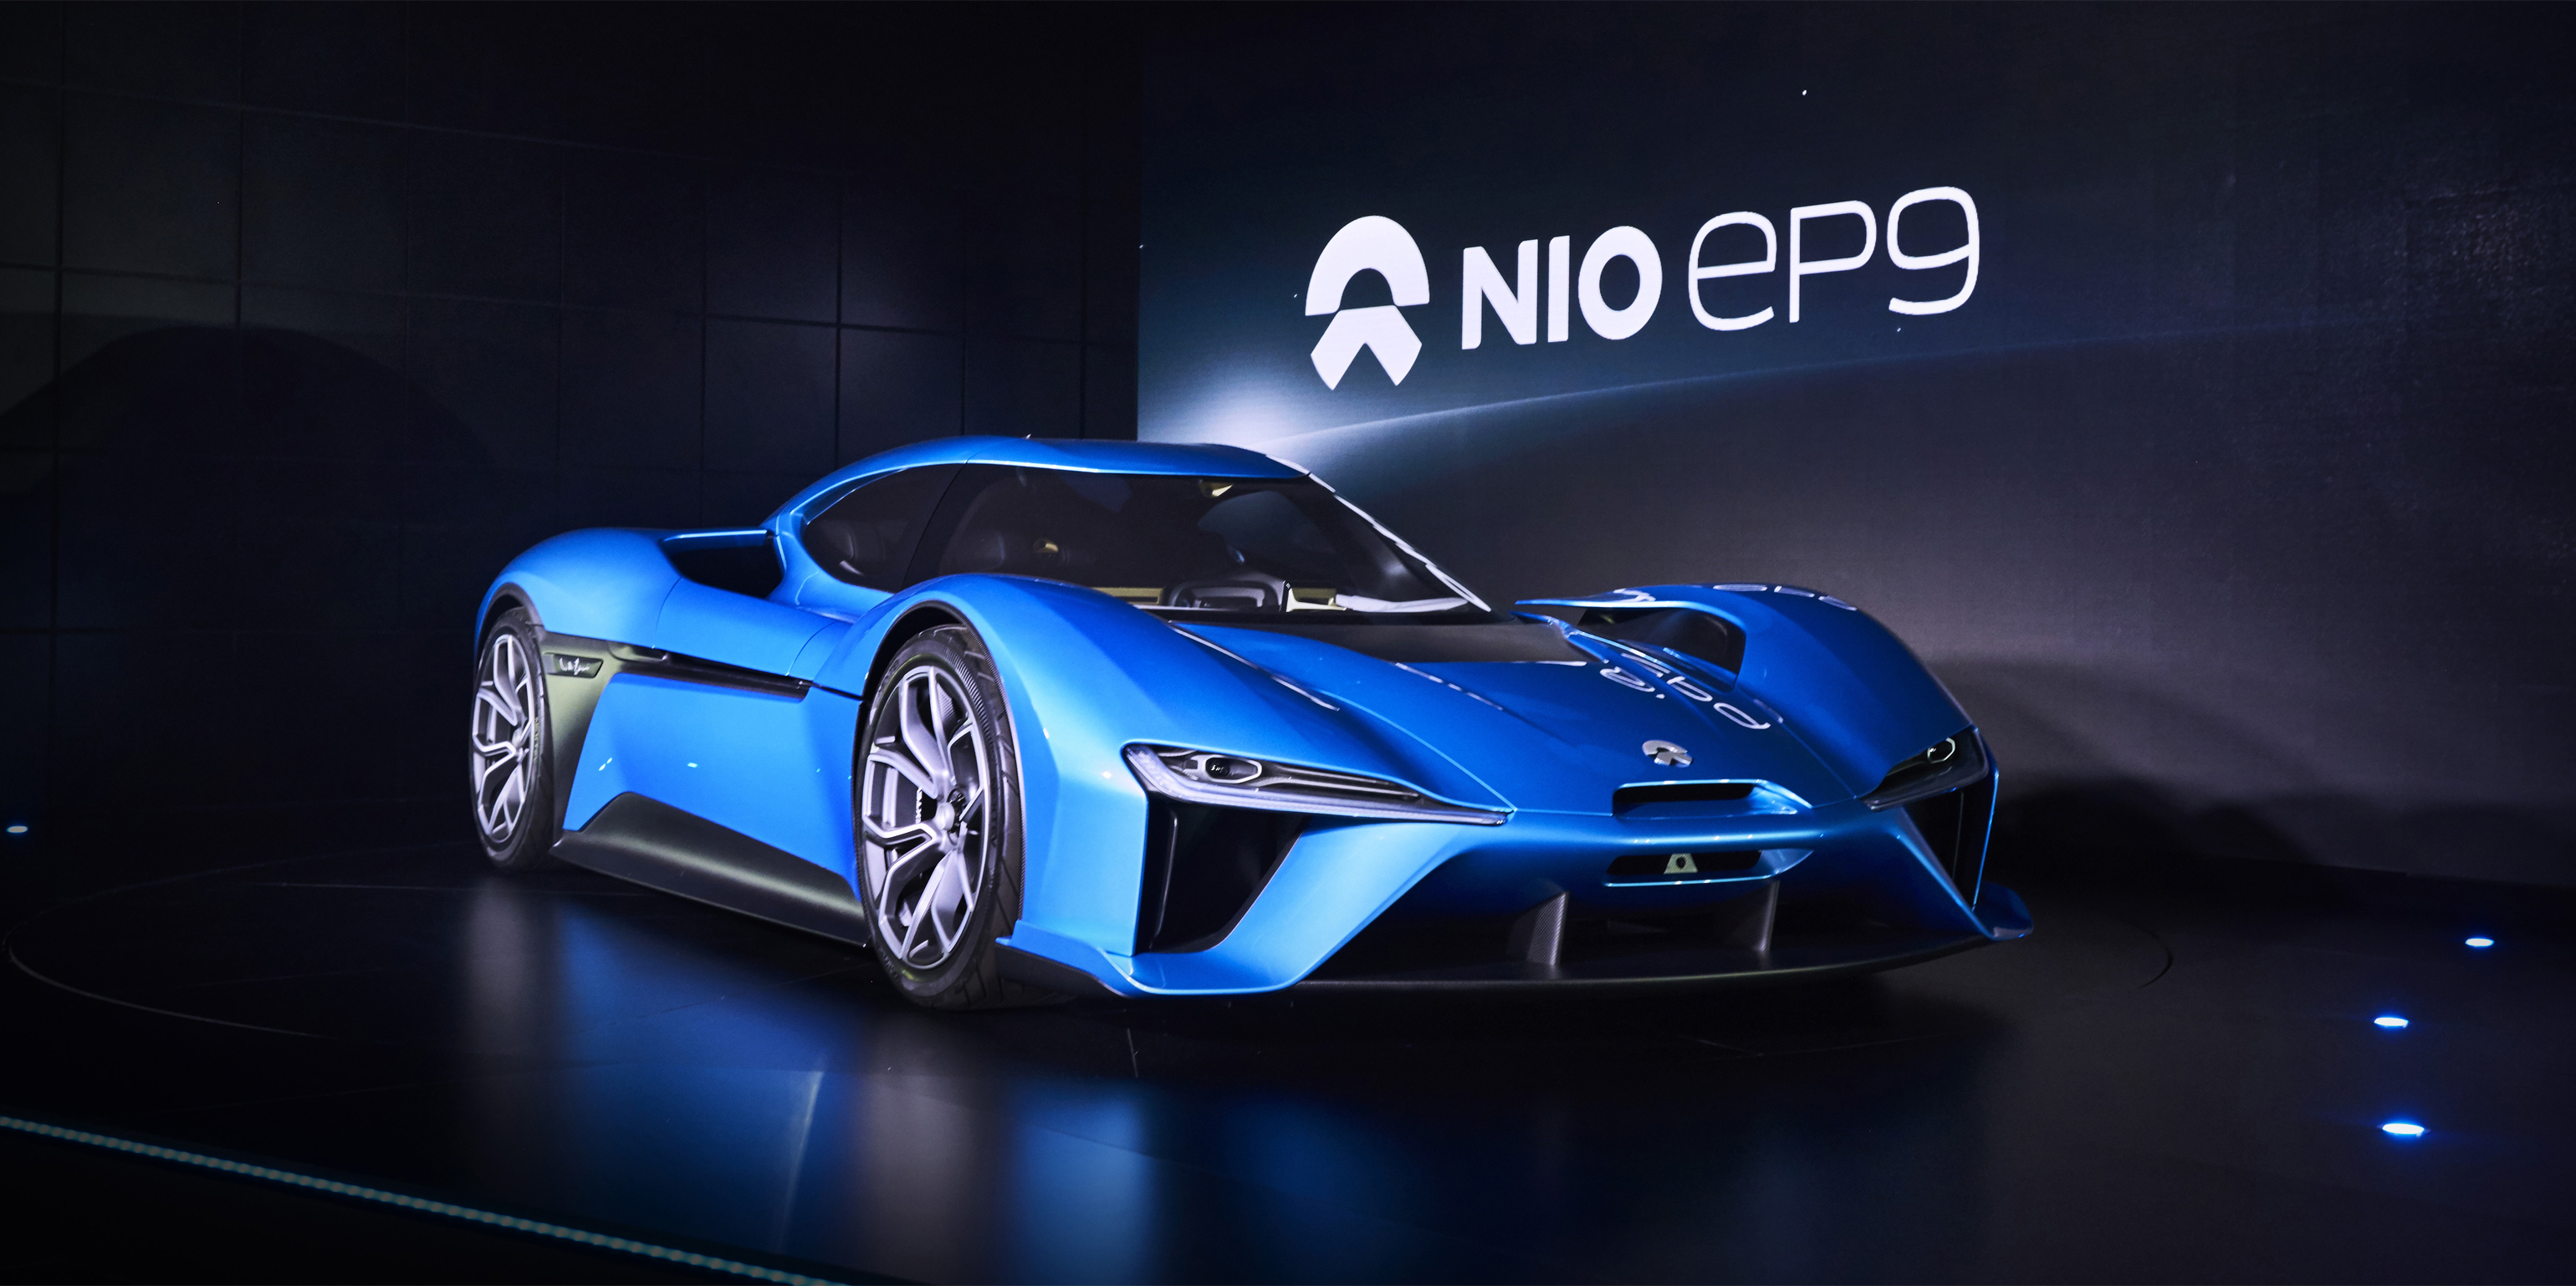 nextev s nio ep9 claims to be the world s fastest electric car autodevot. Black Bedroom Furniture Sets. Home Design Ideas